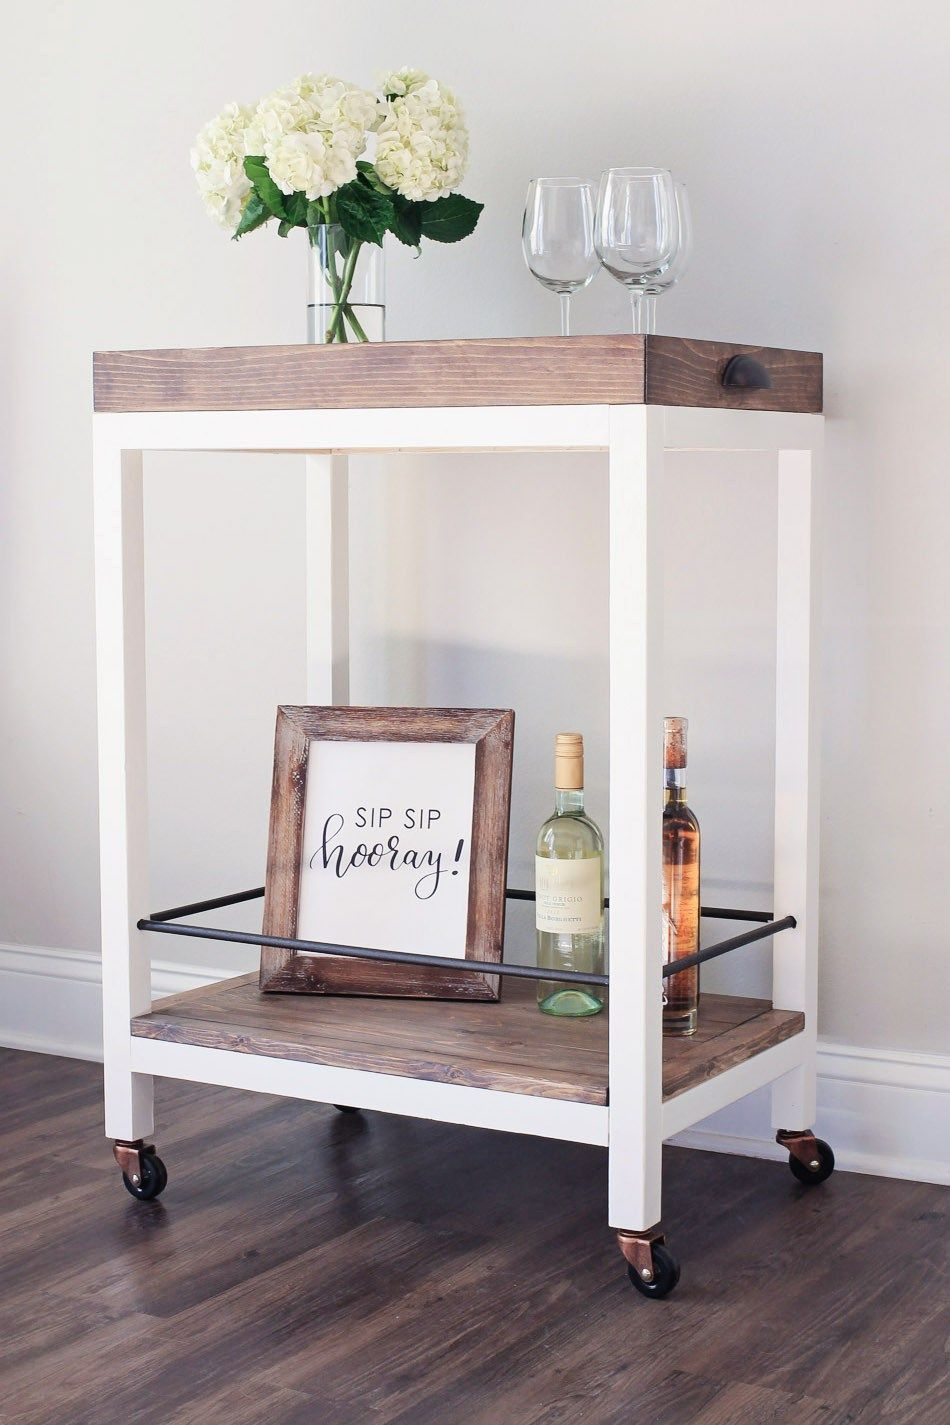 retro bar cart 1950's home bar decor and retro carts they are big yes please wwwbarstoolsfurniturecom please